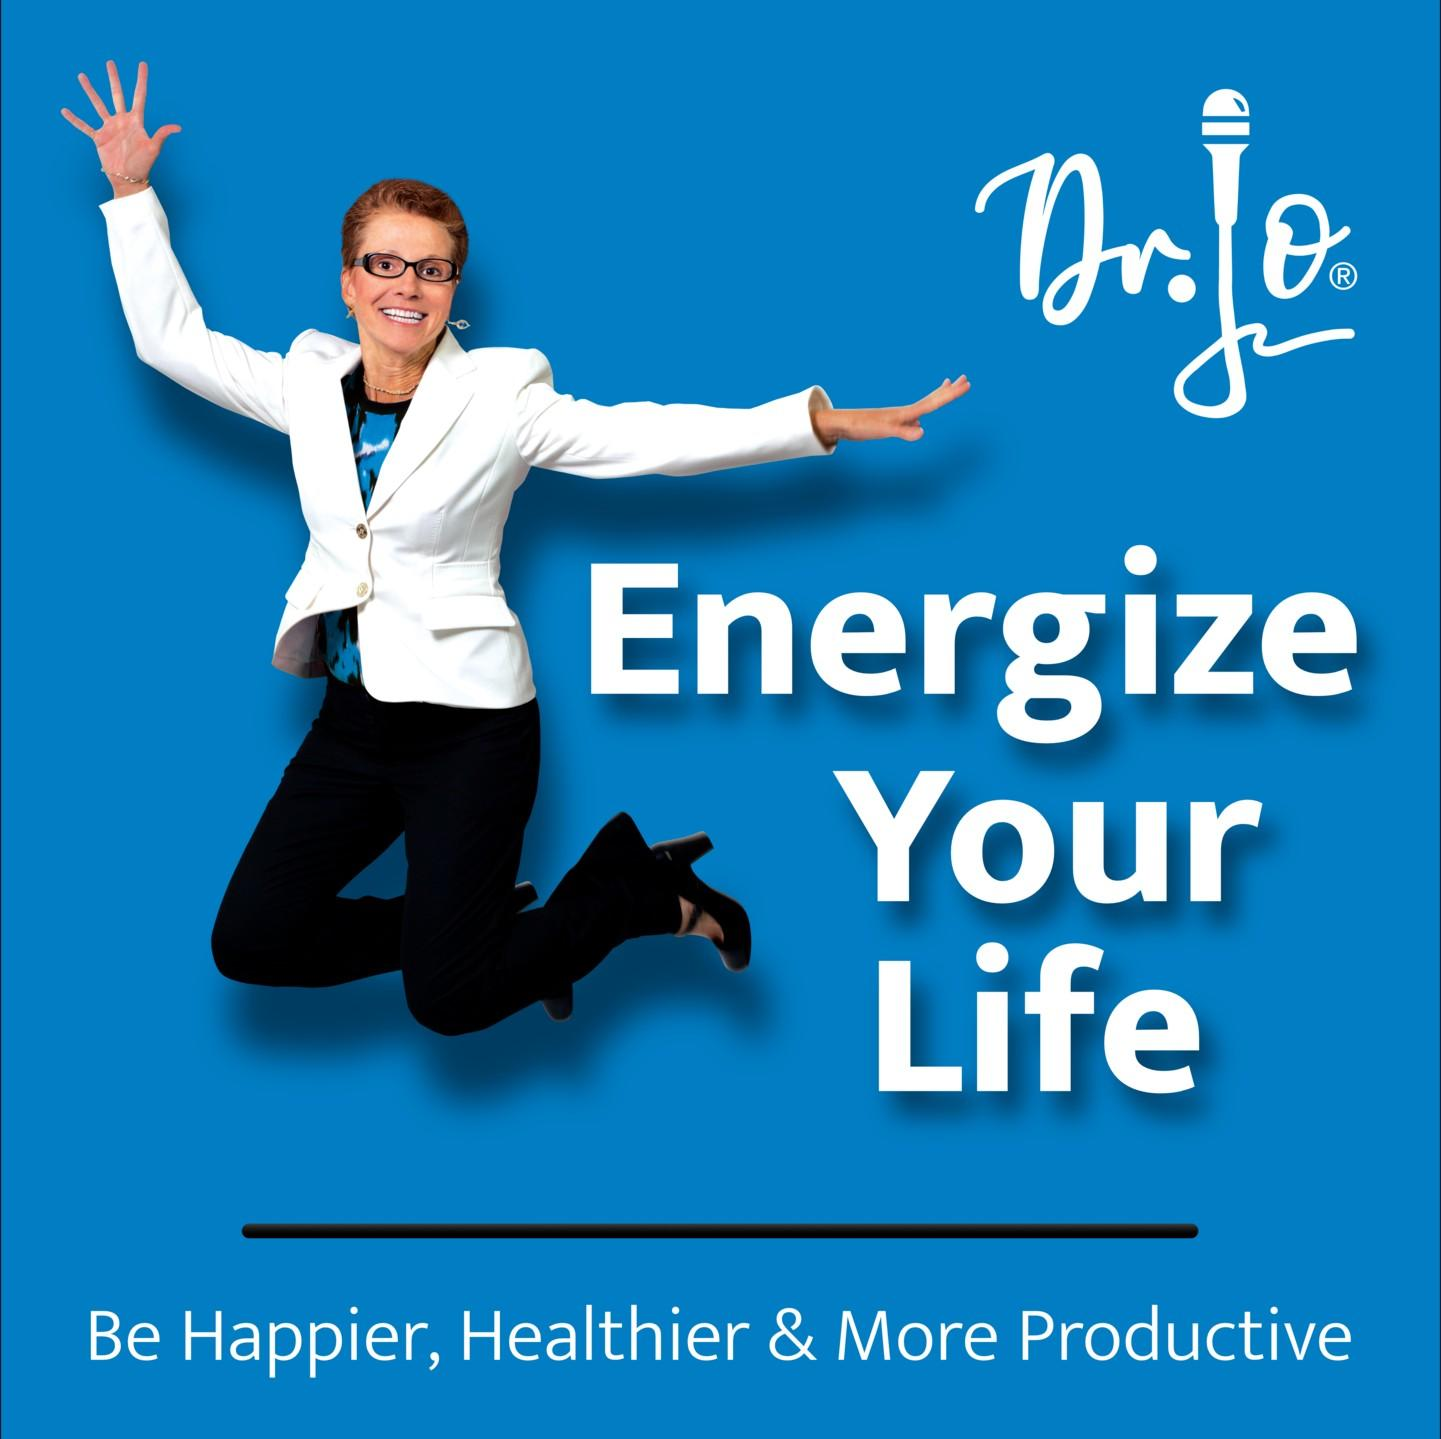 Dr. Jo's Energize Your Life podcast